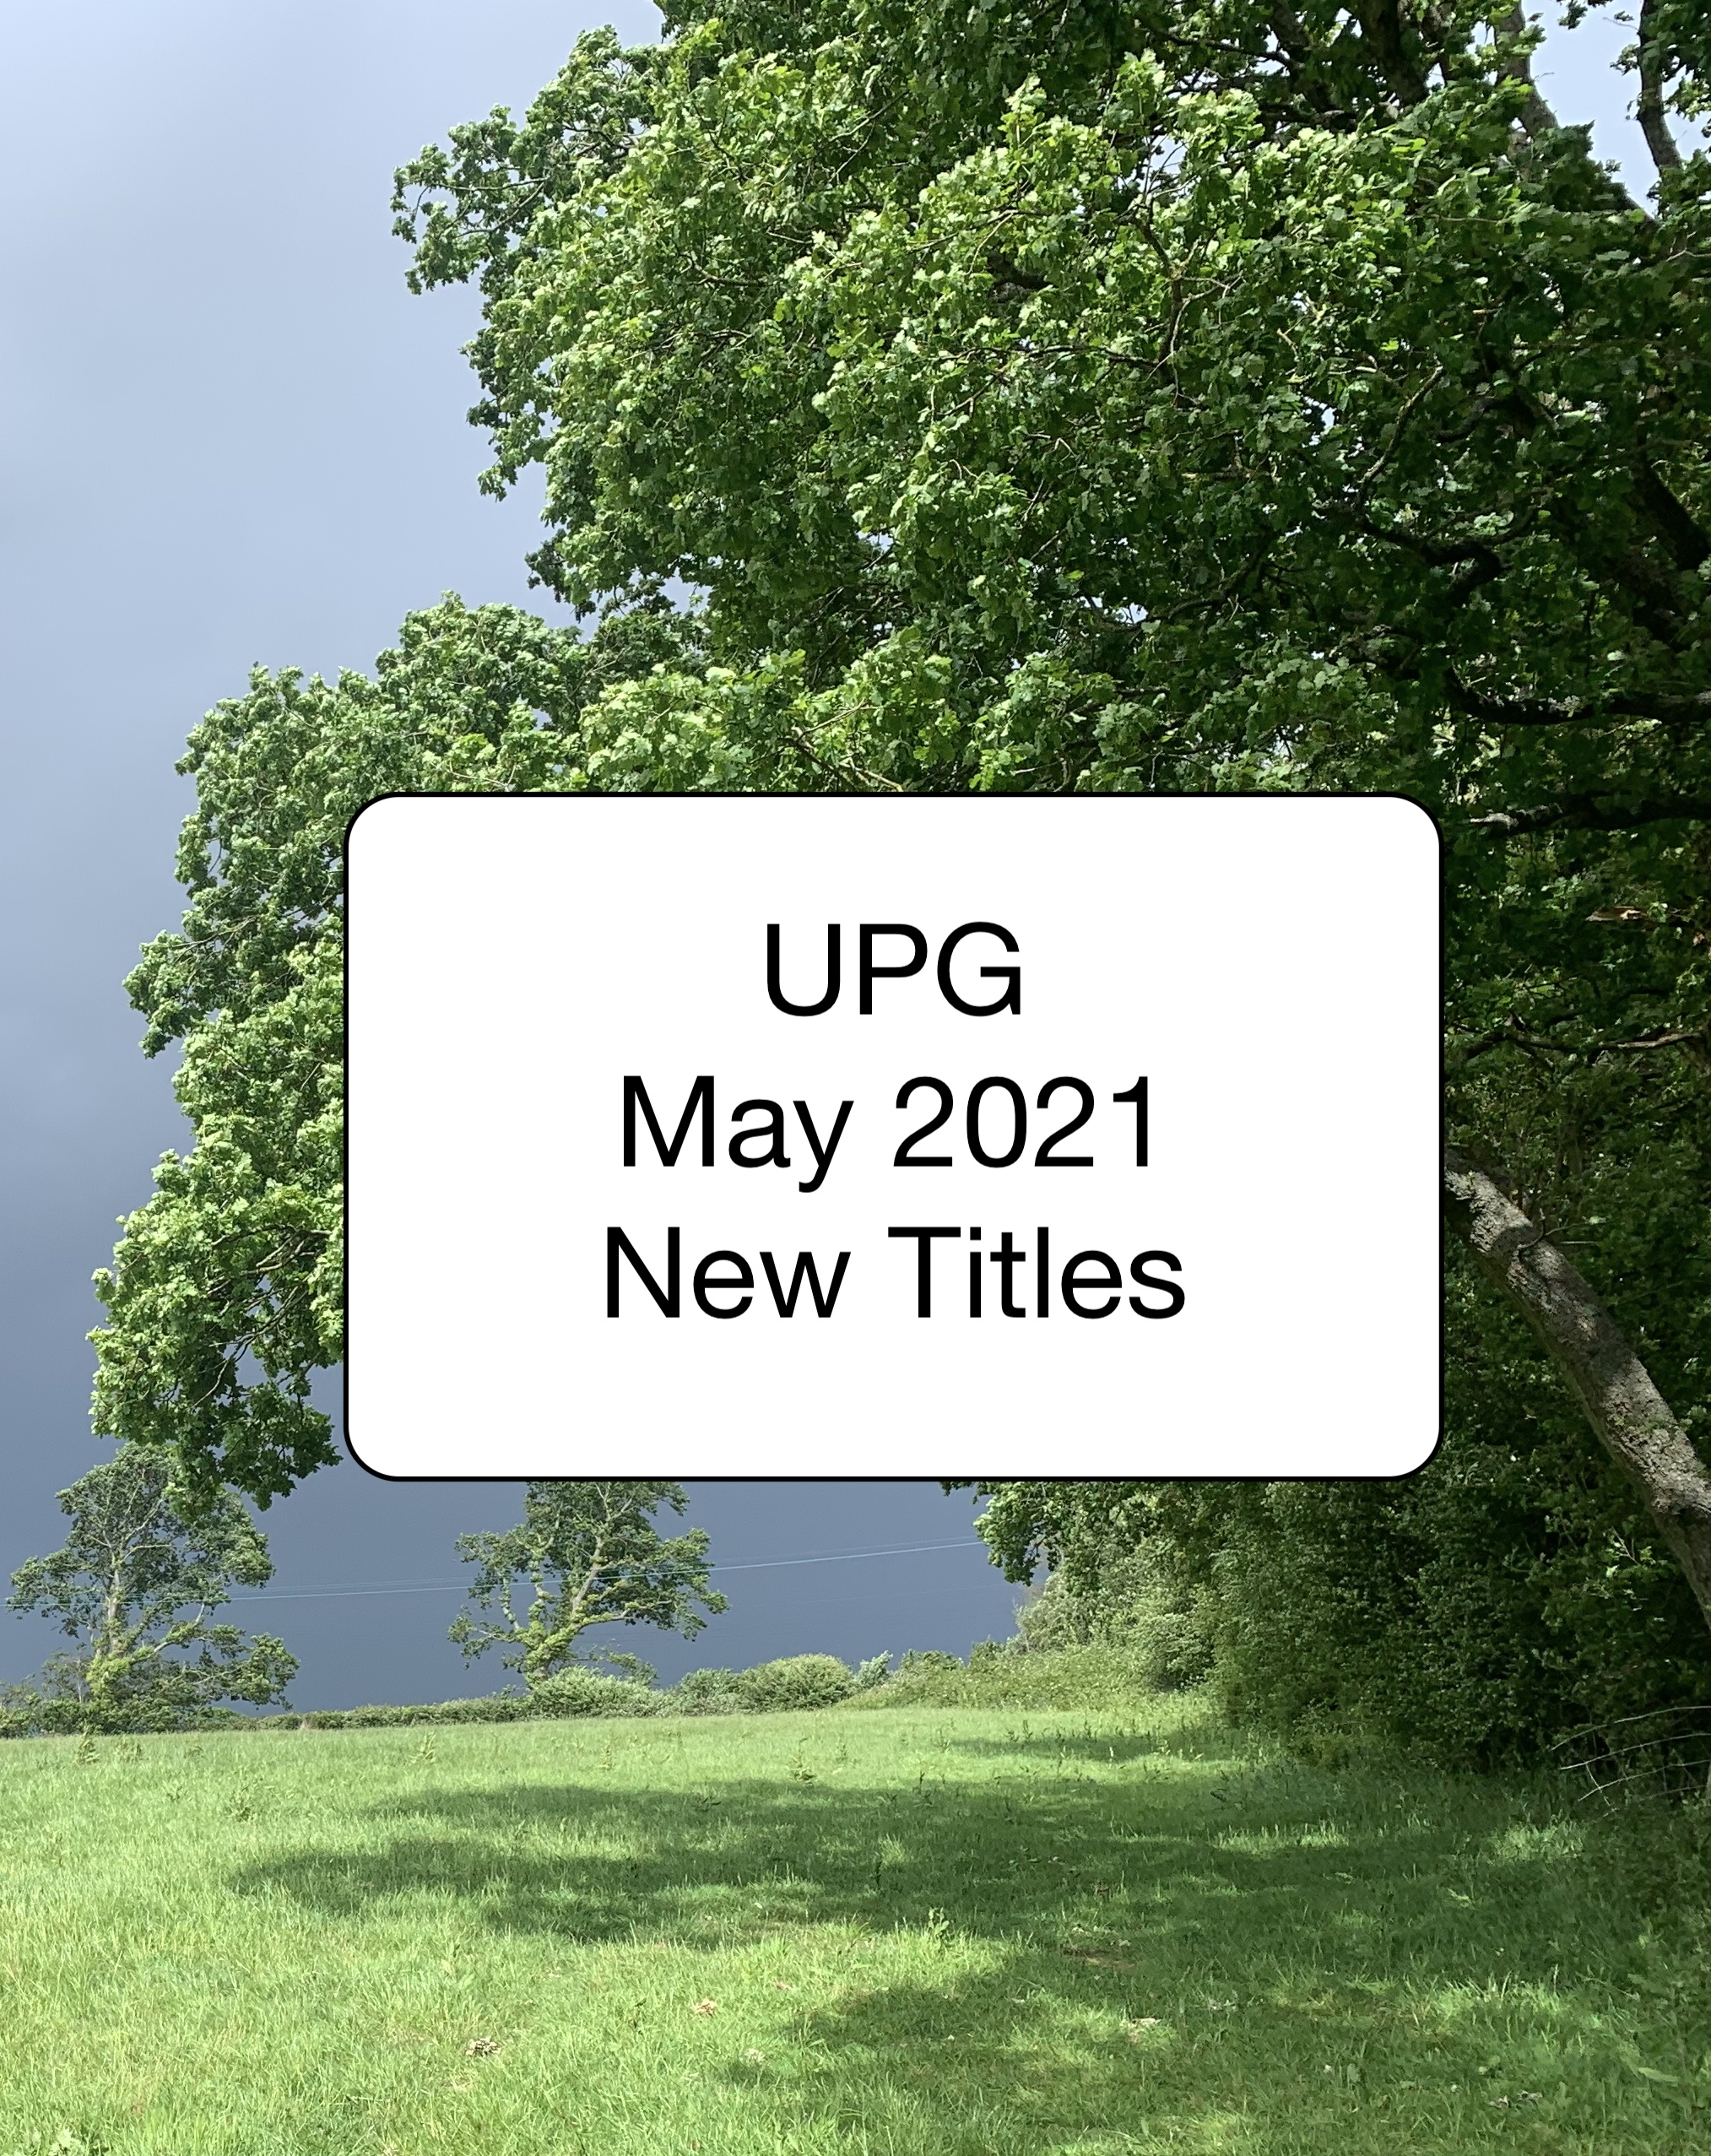 UPG May 2021 New Titles